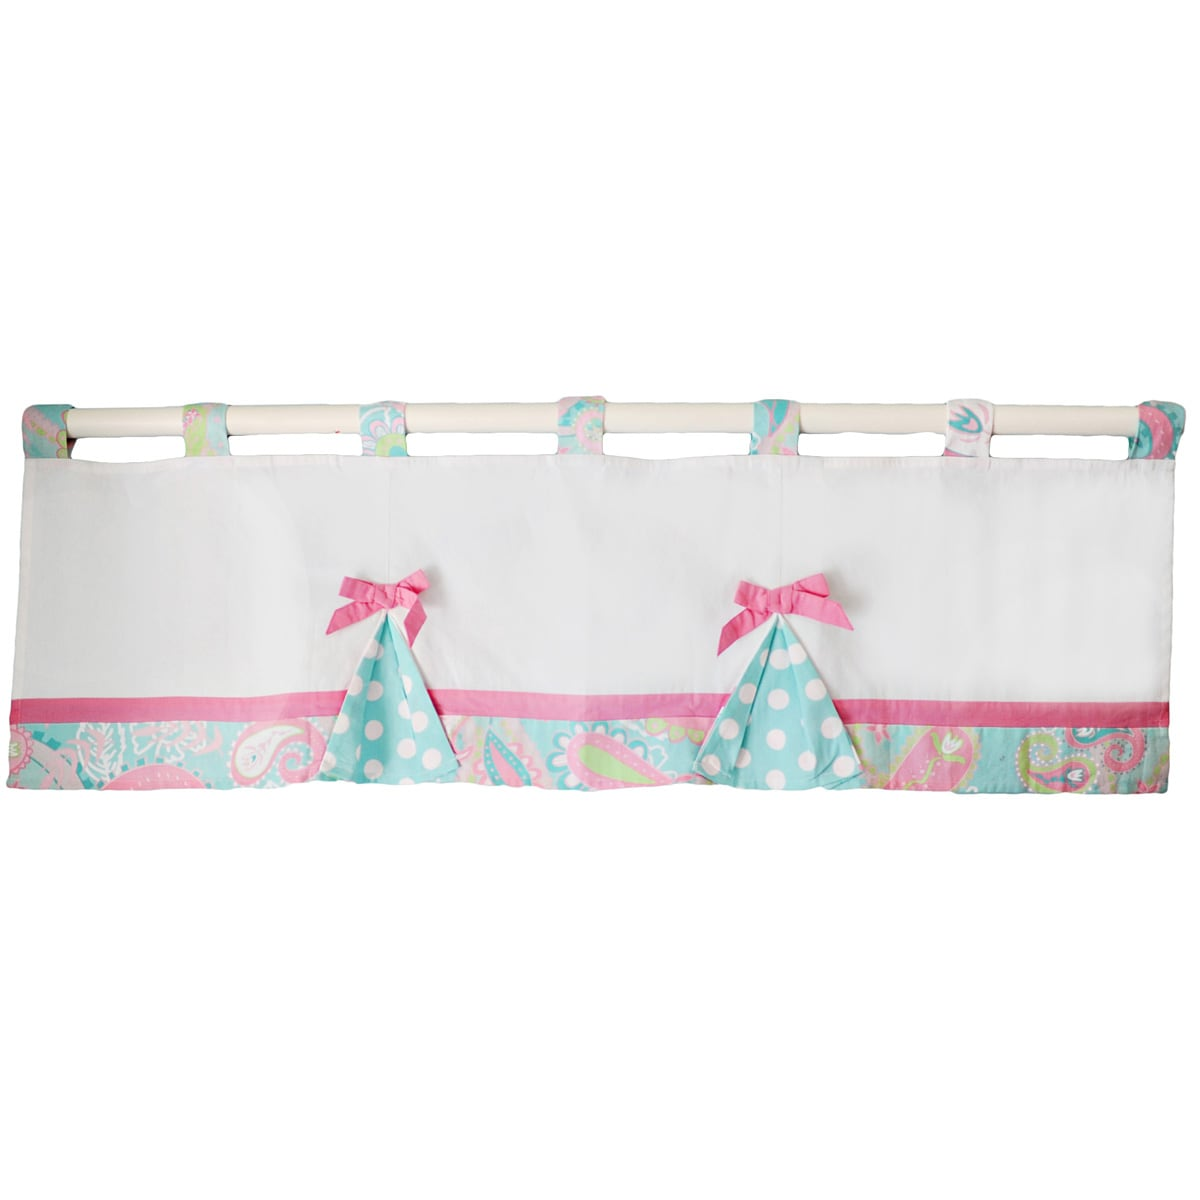 My Baby Sam Pixie Baby Curtain Valance in Aqua by Overstock